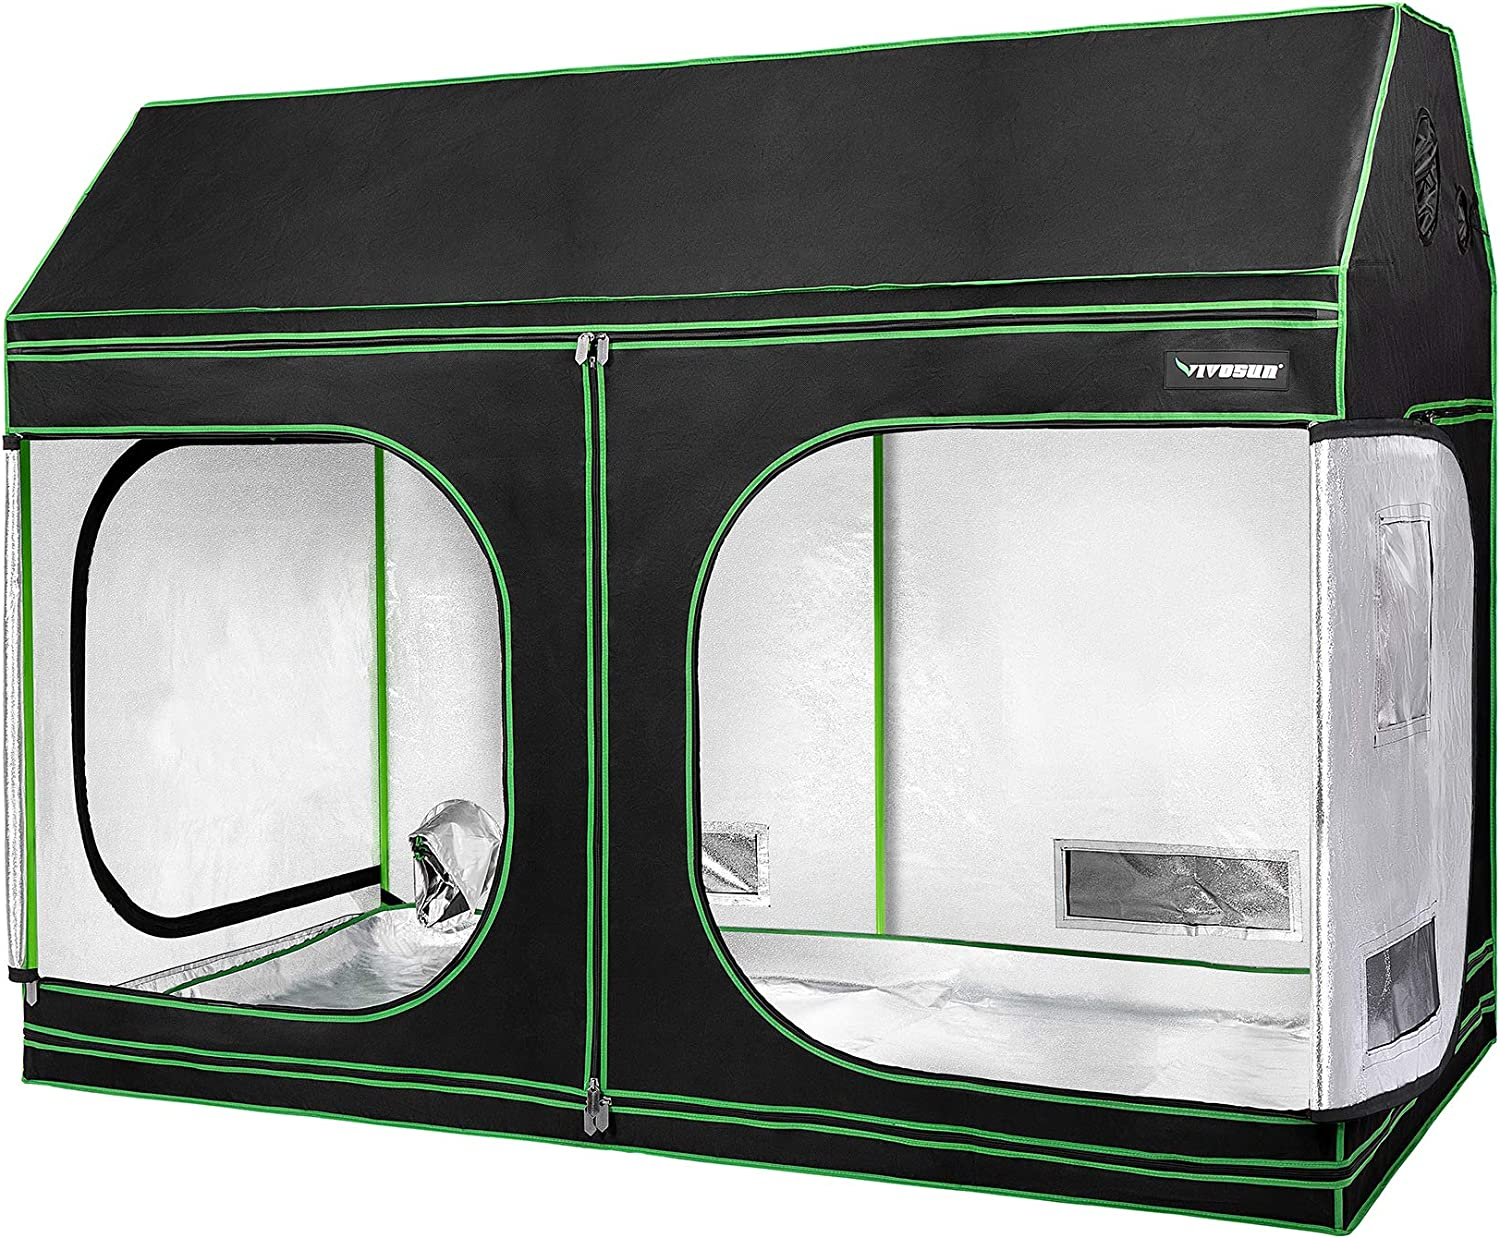 VIVOSUN 96″x48″x72″ Indoor Grow Tent, Roof Cube Tent